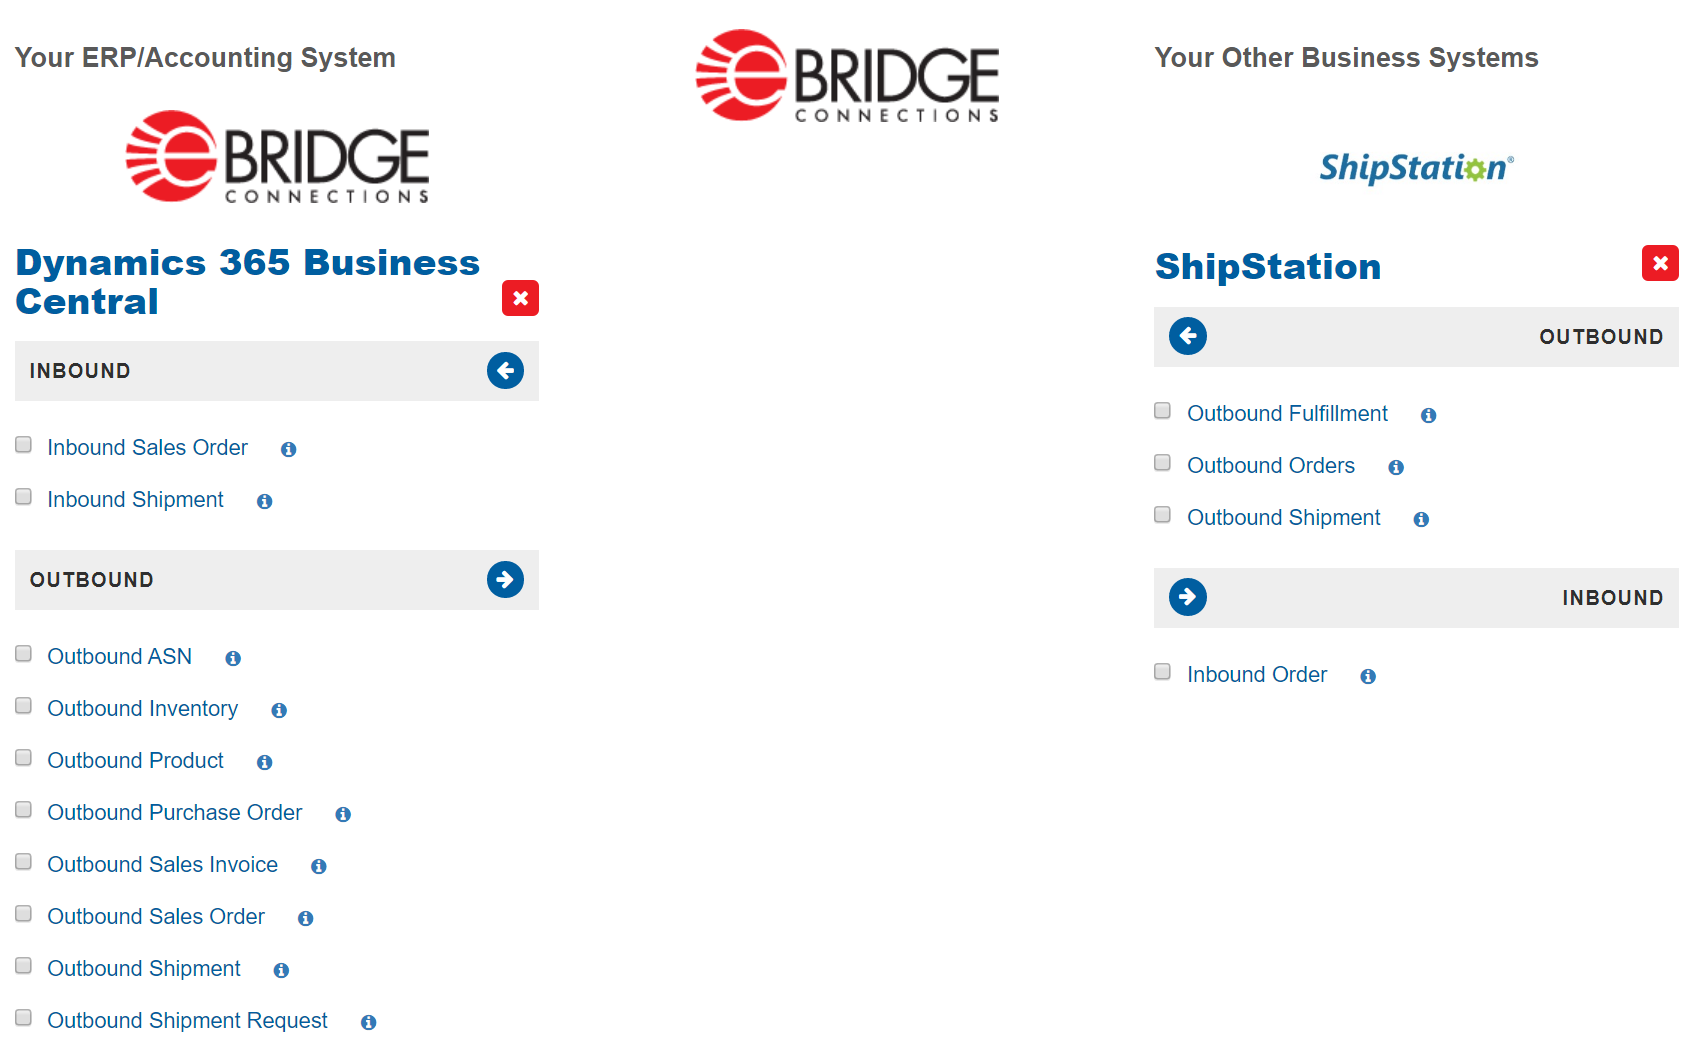 ShipStation-Microsoft-Dynamics-365-Business-Central-Integration-From-eBridge-Connections.PNG